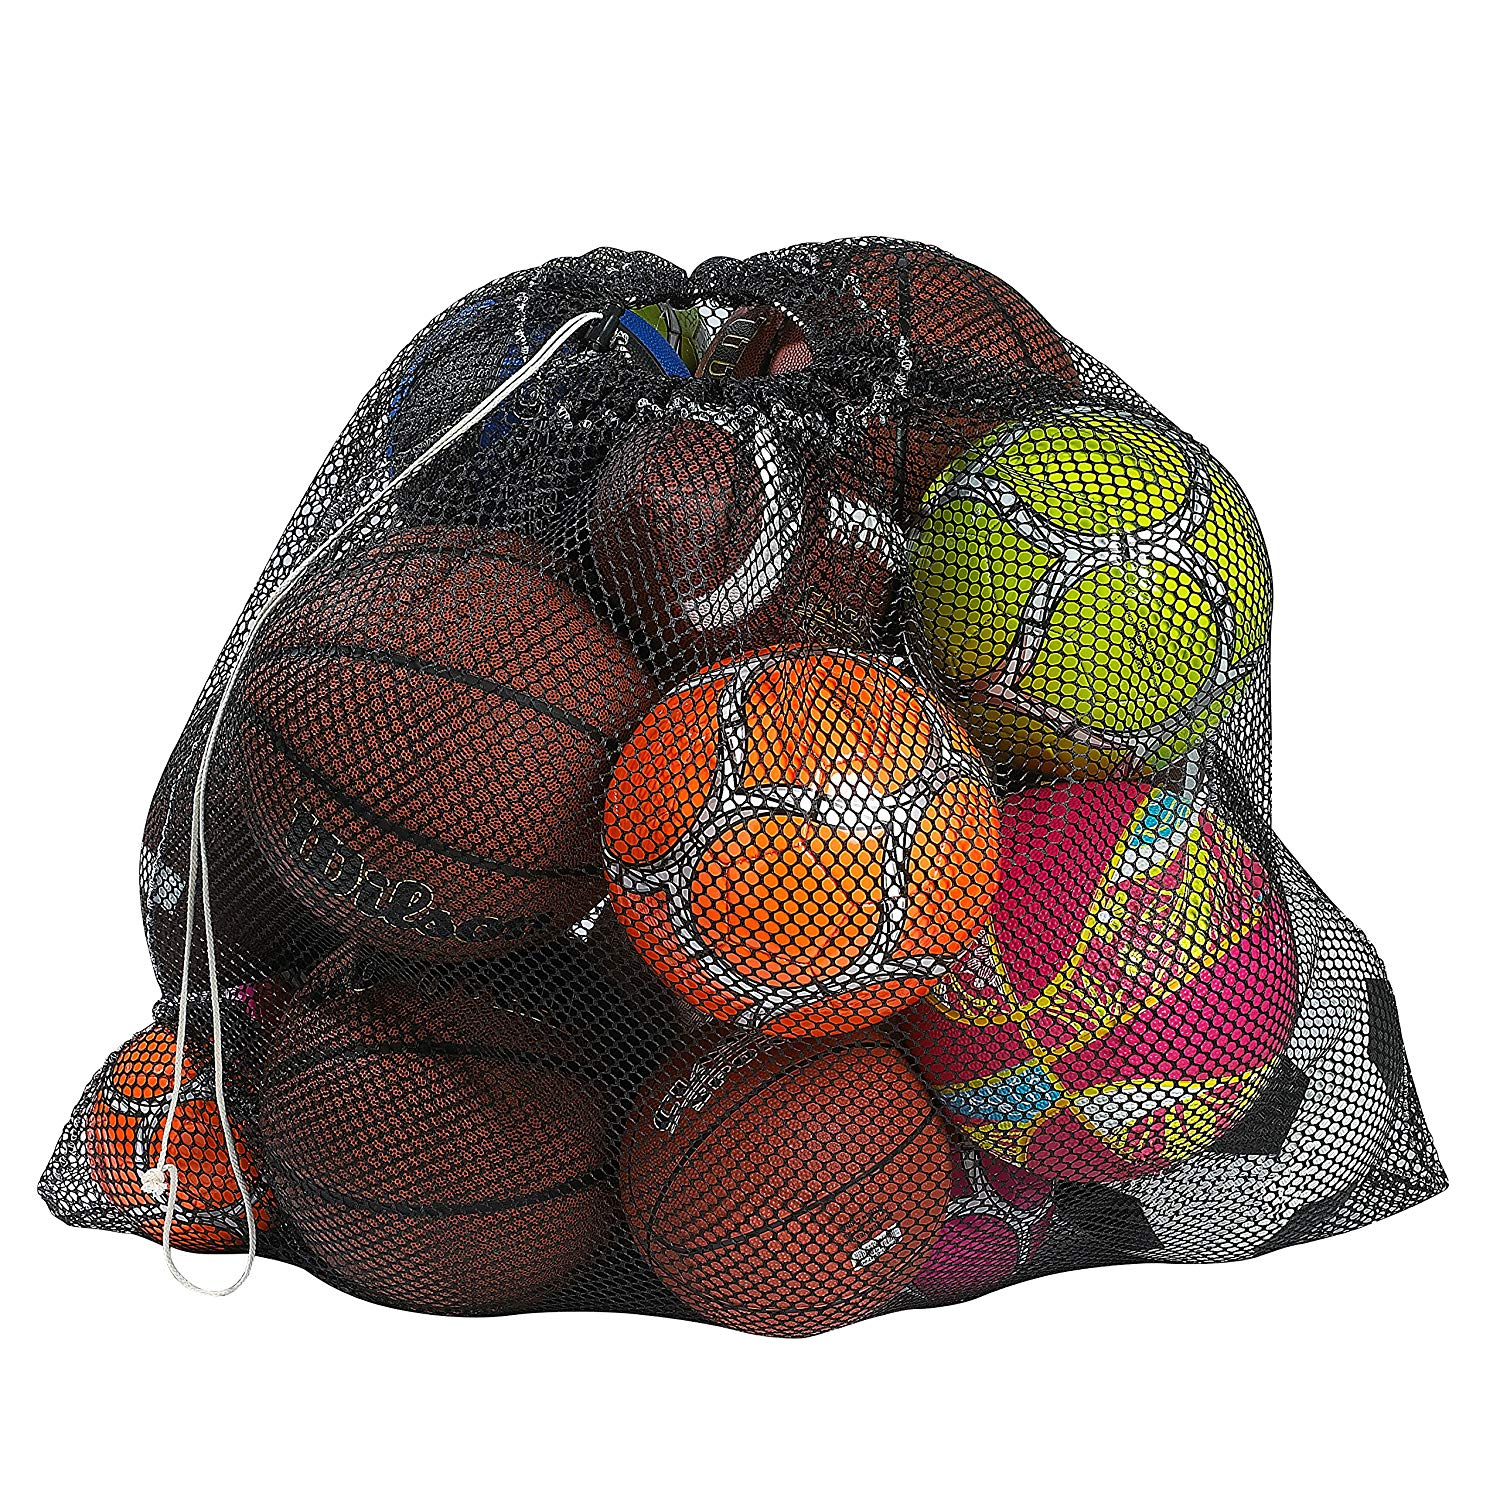 Top 8 Soccer Equipment Bags